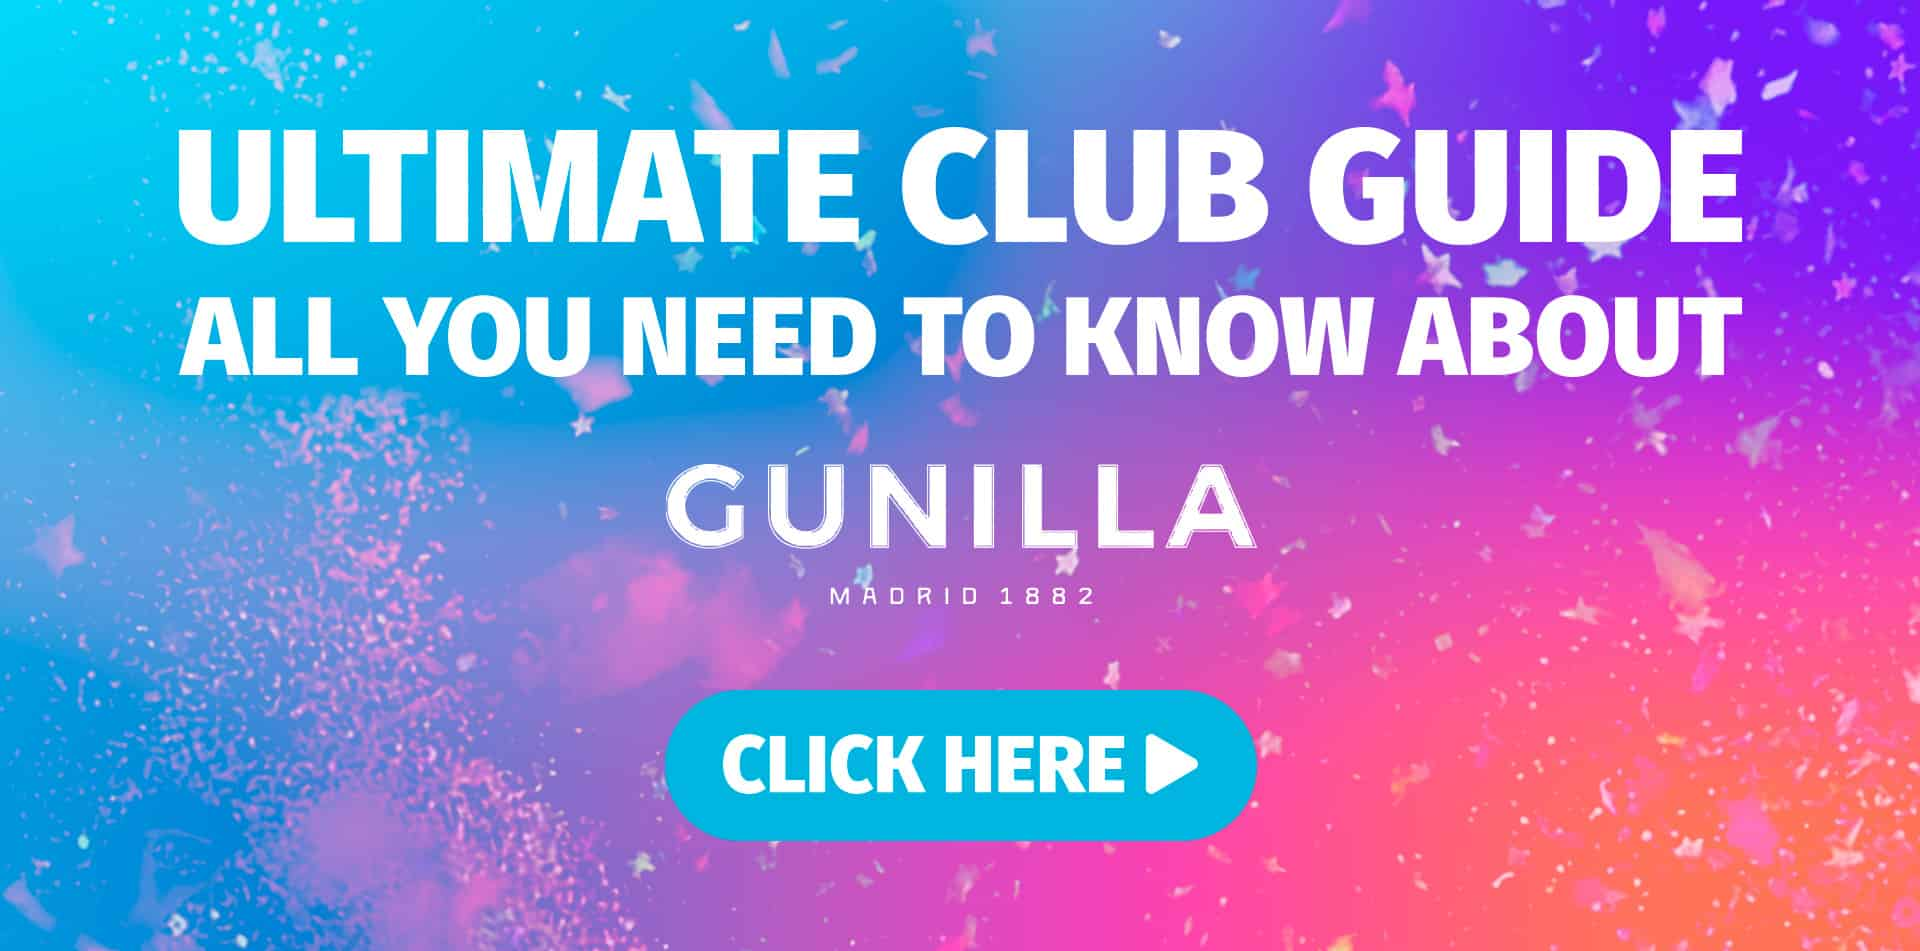 Ultimate Club Guide - Gunilla Madrid